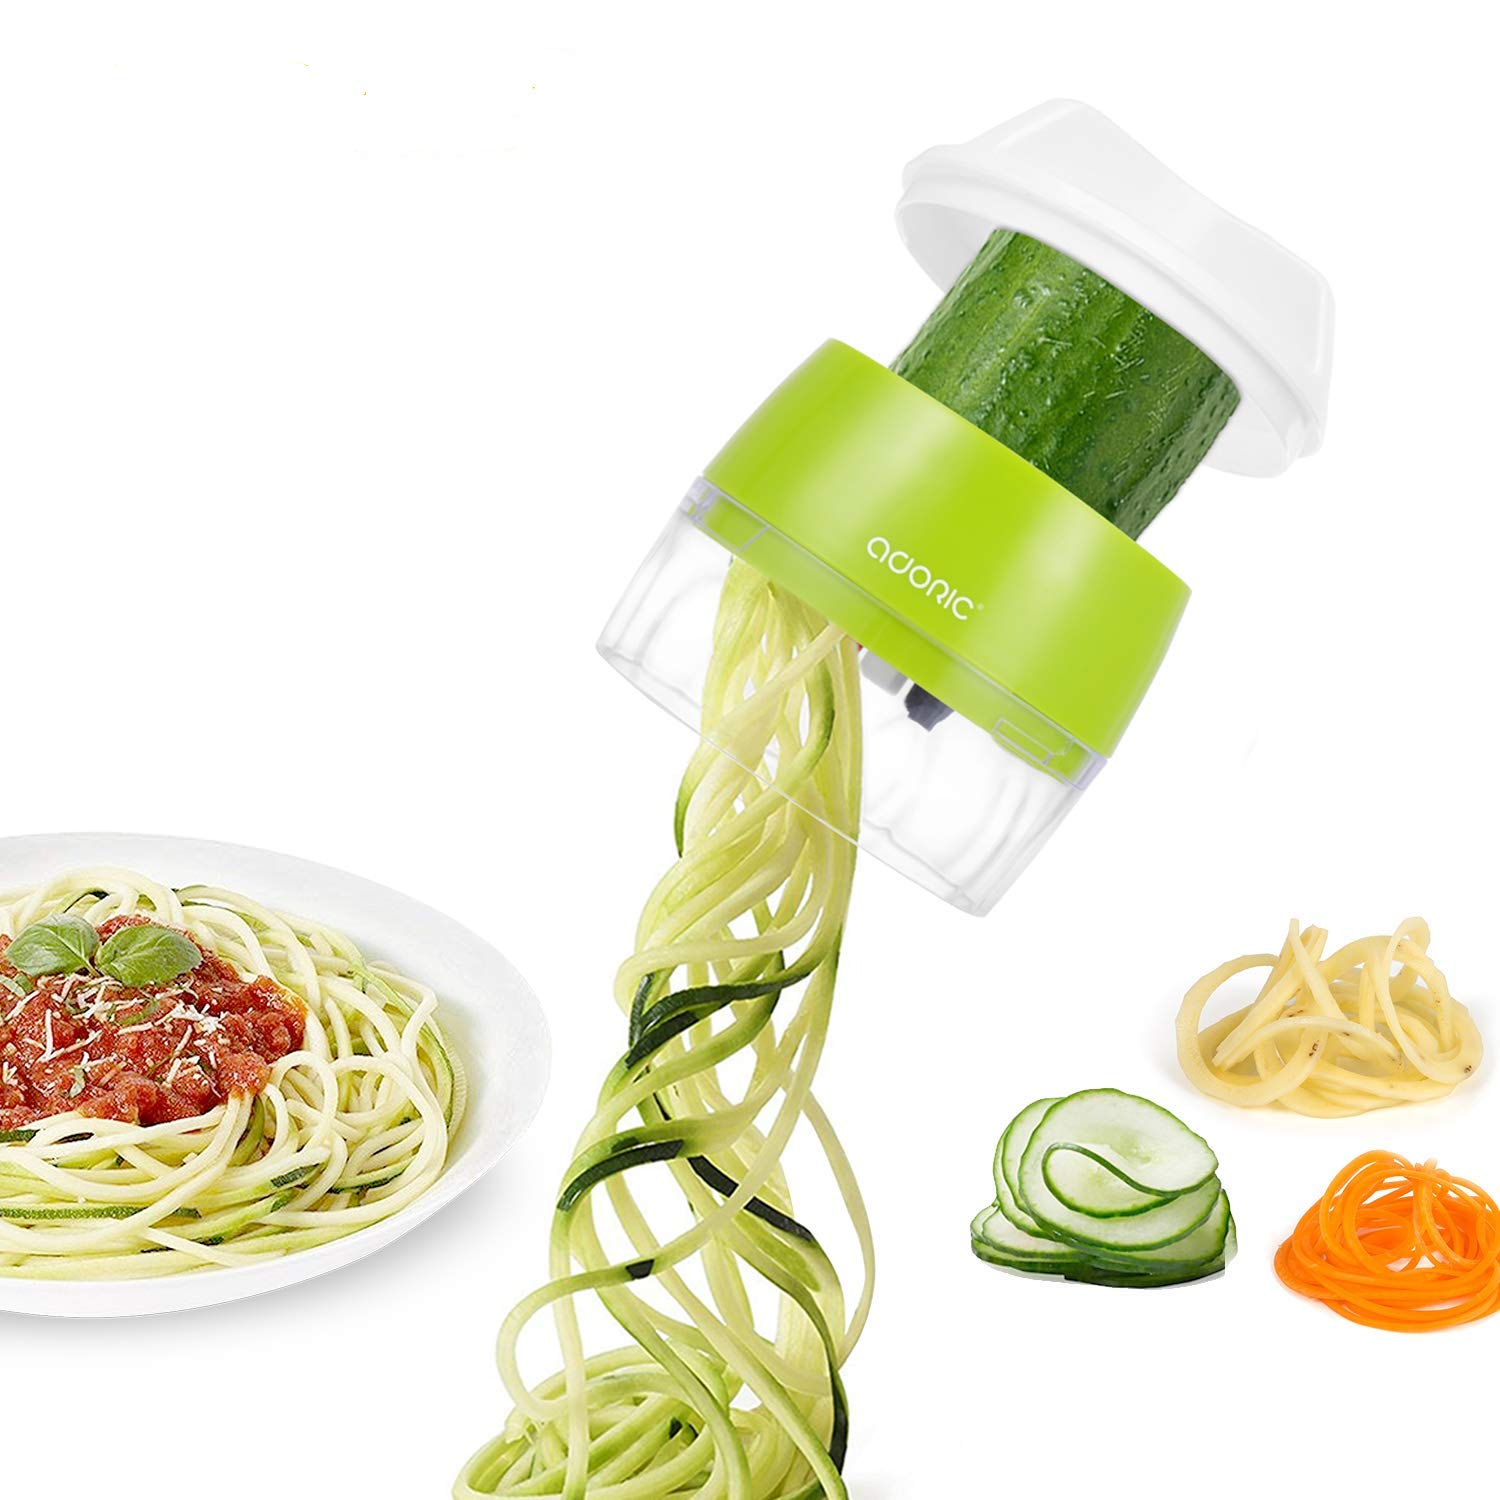 Handheld Vegetable Slicer, Adoric Vegetable Spiralizer Upgraded 4 in 1 Heavy Duty Veggie Spiral Cutter - Zoodle Pasta Spaghetti Maker by Adoric